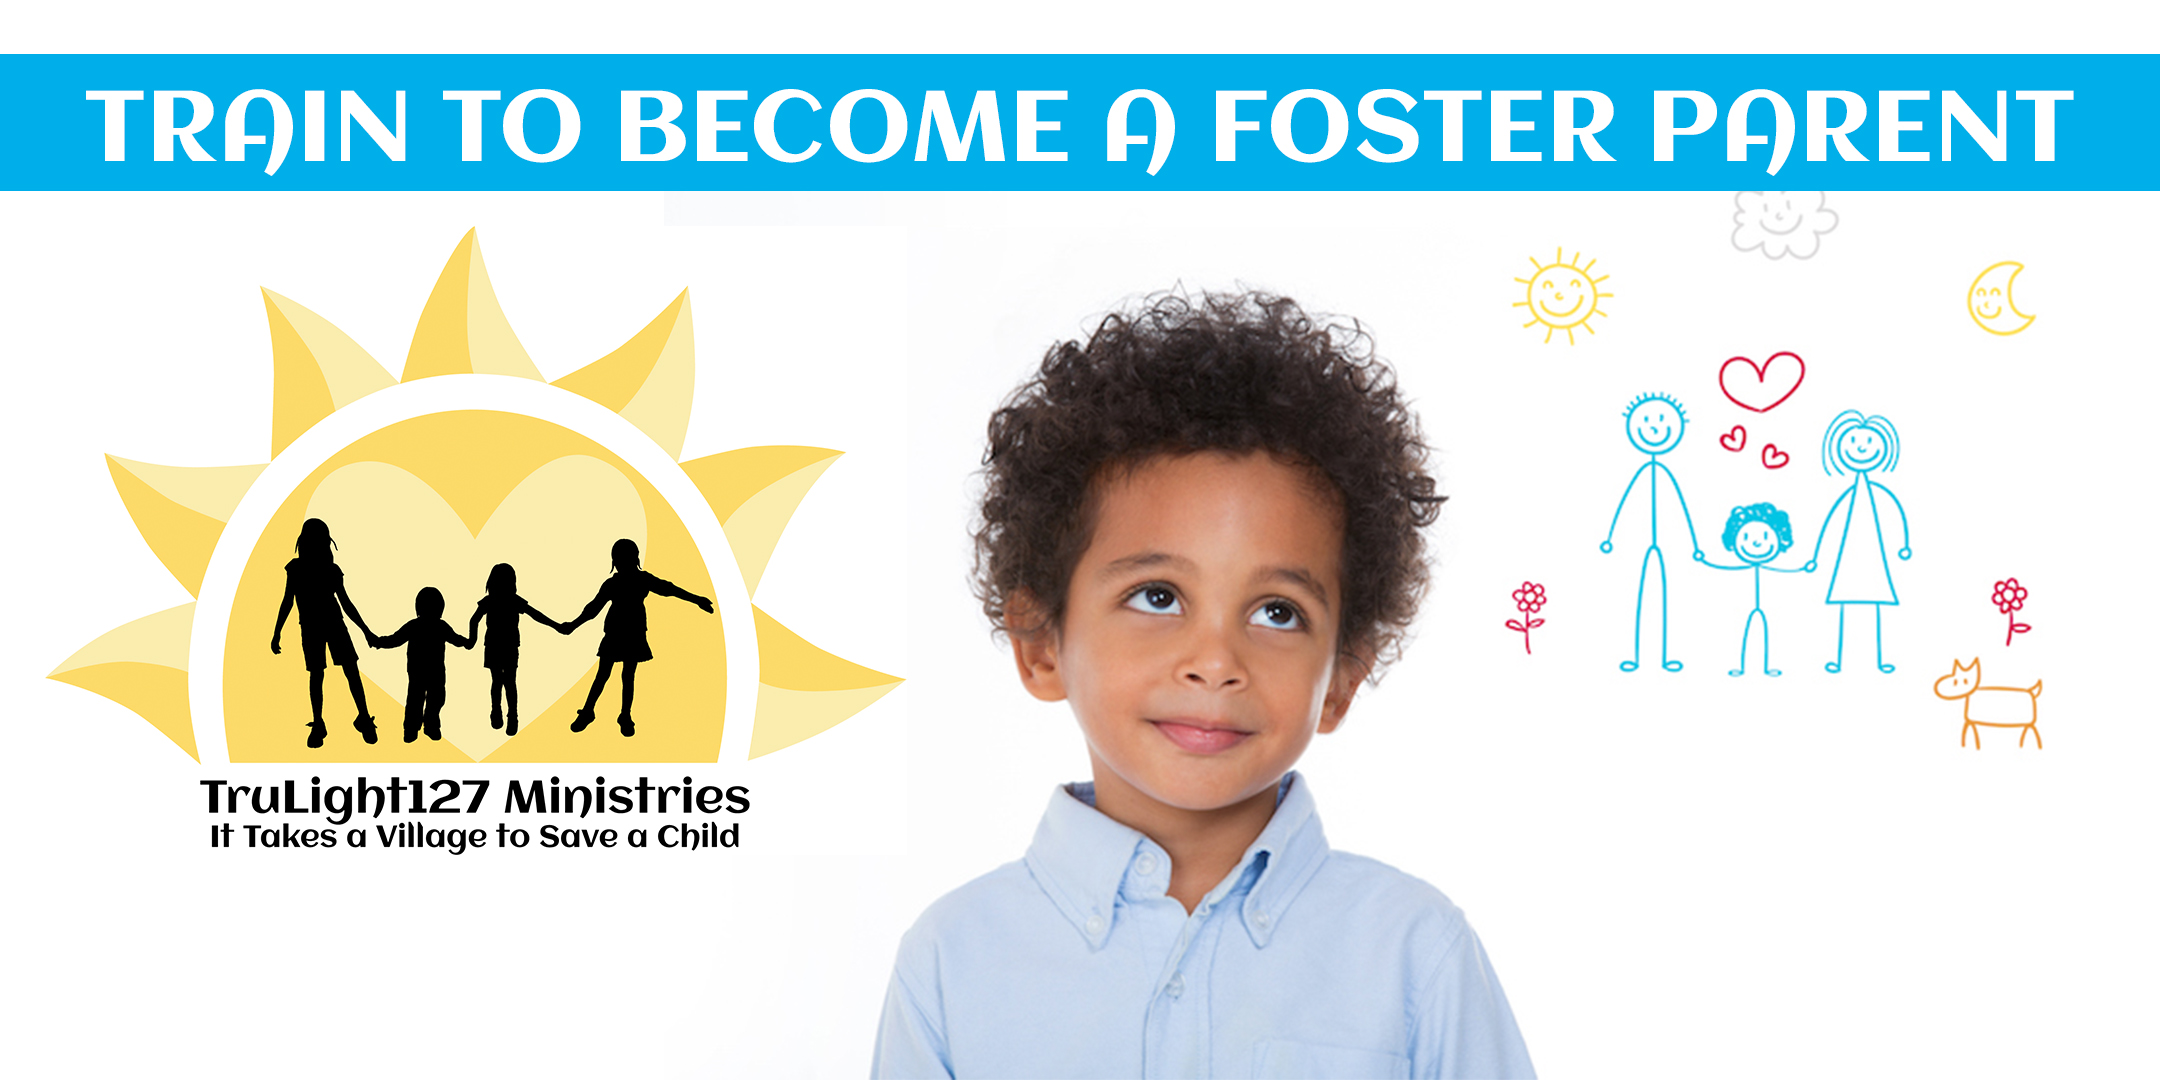 Train to become a foster parent